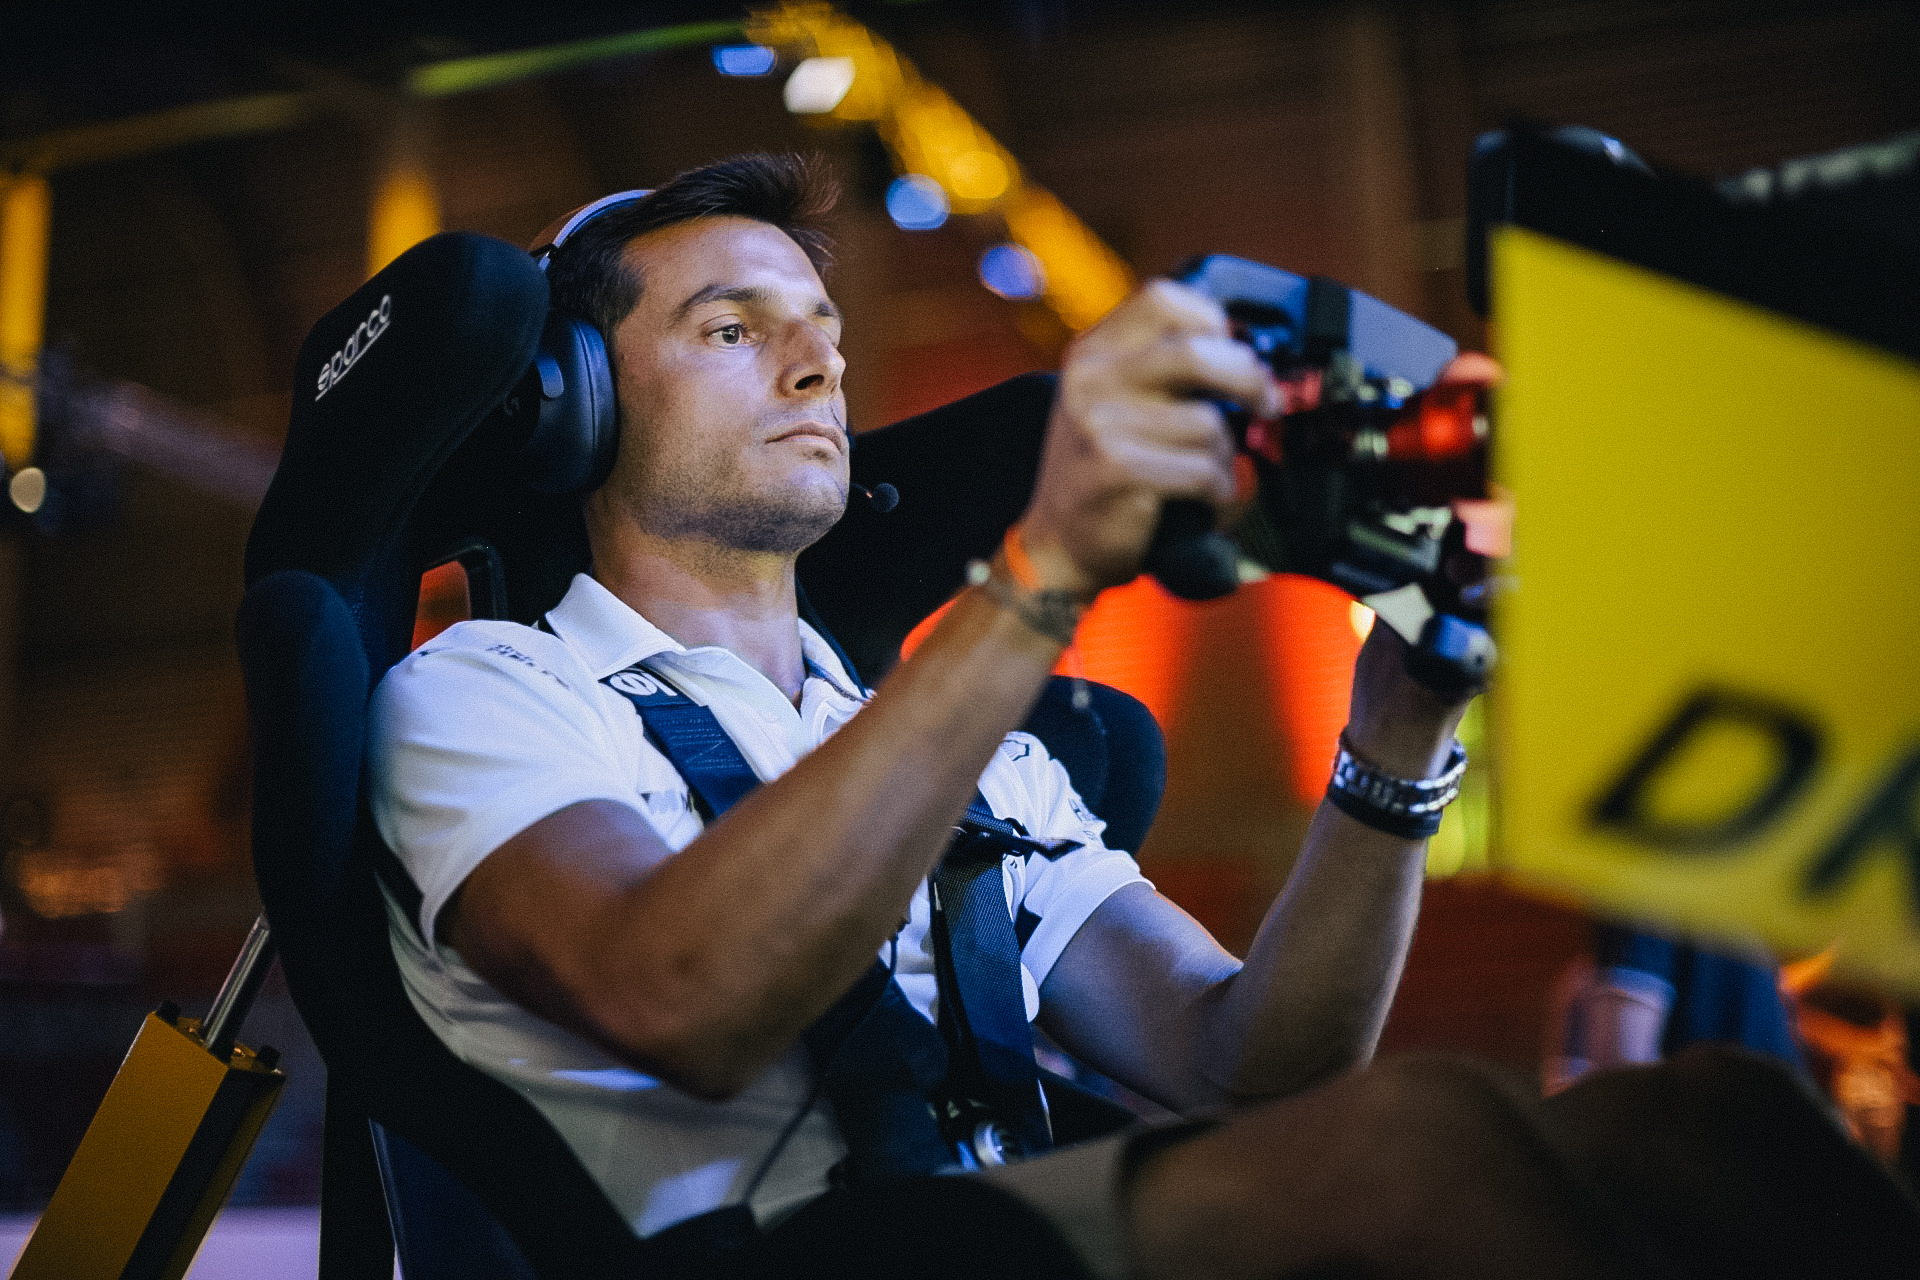 BMW Drivers Raced Pro Players in ADAC SimRacing EXPO this Weekend